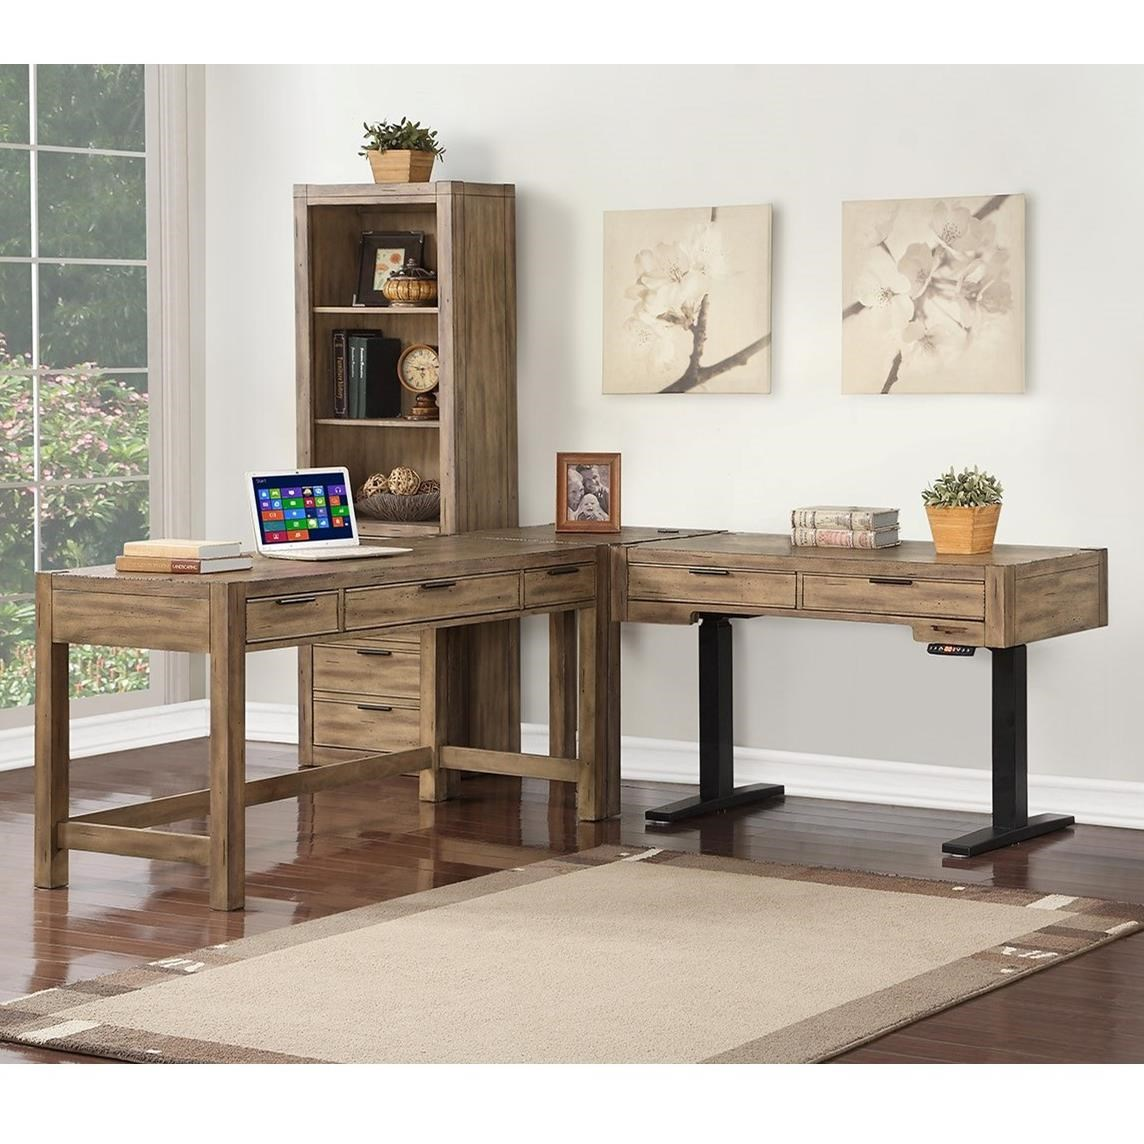 3 Pc L-Shaped Desk